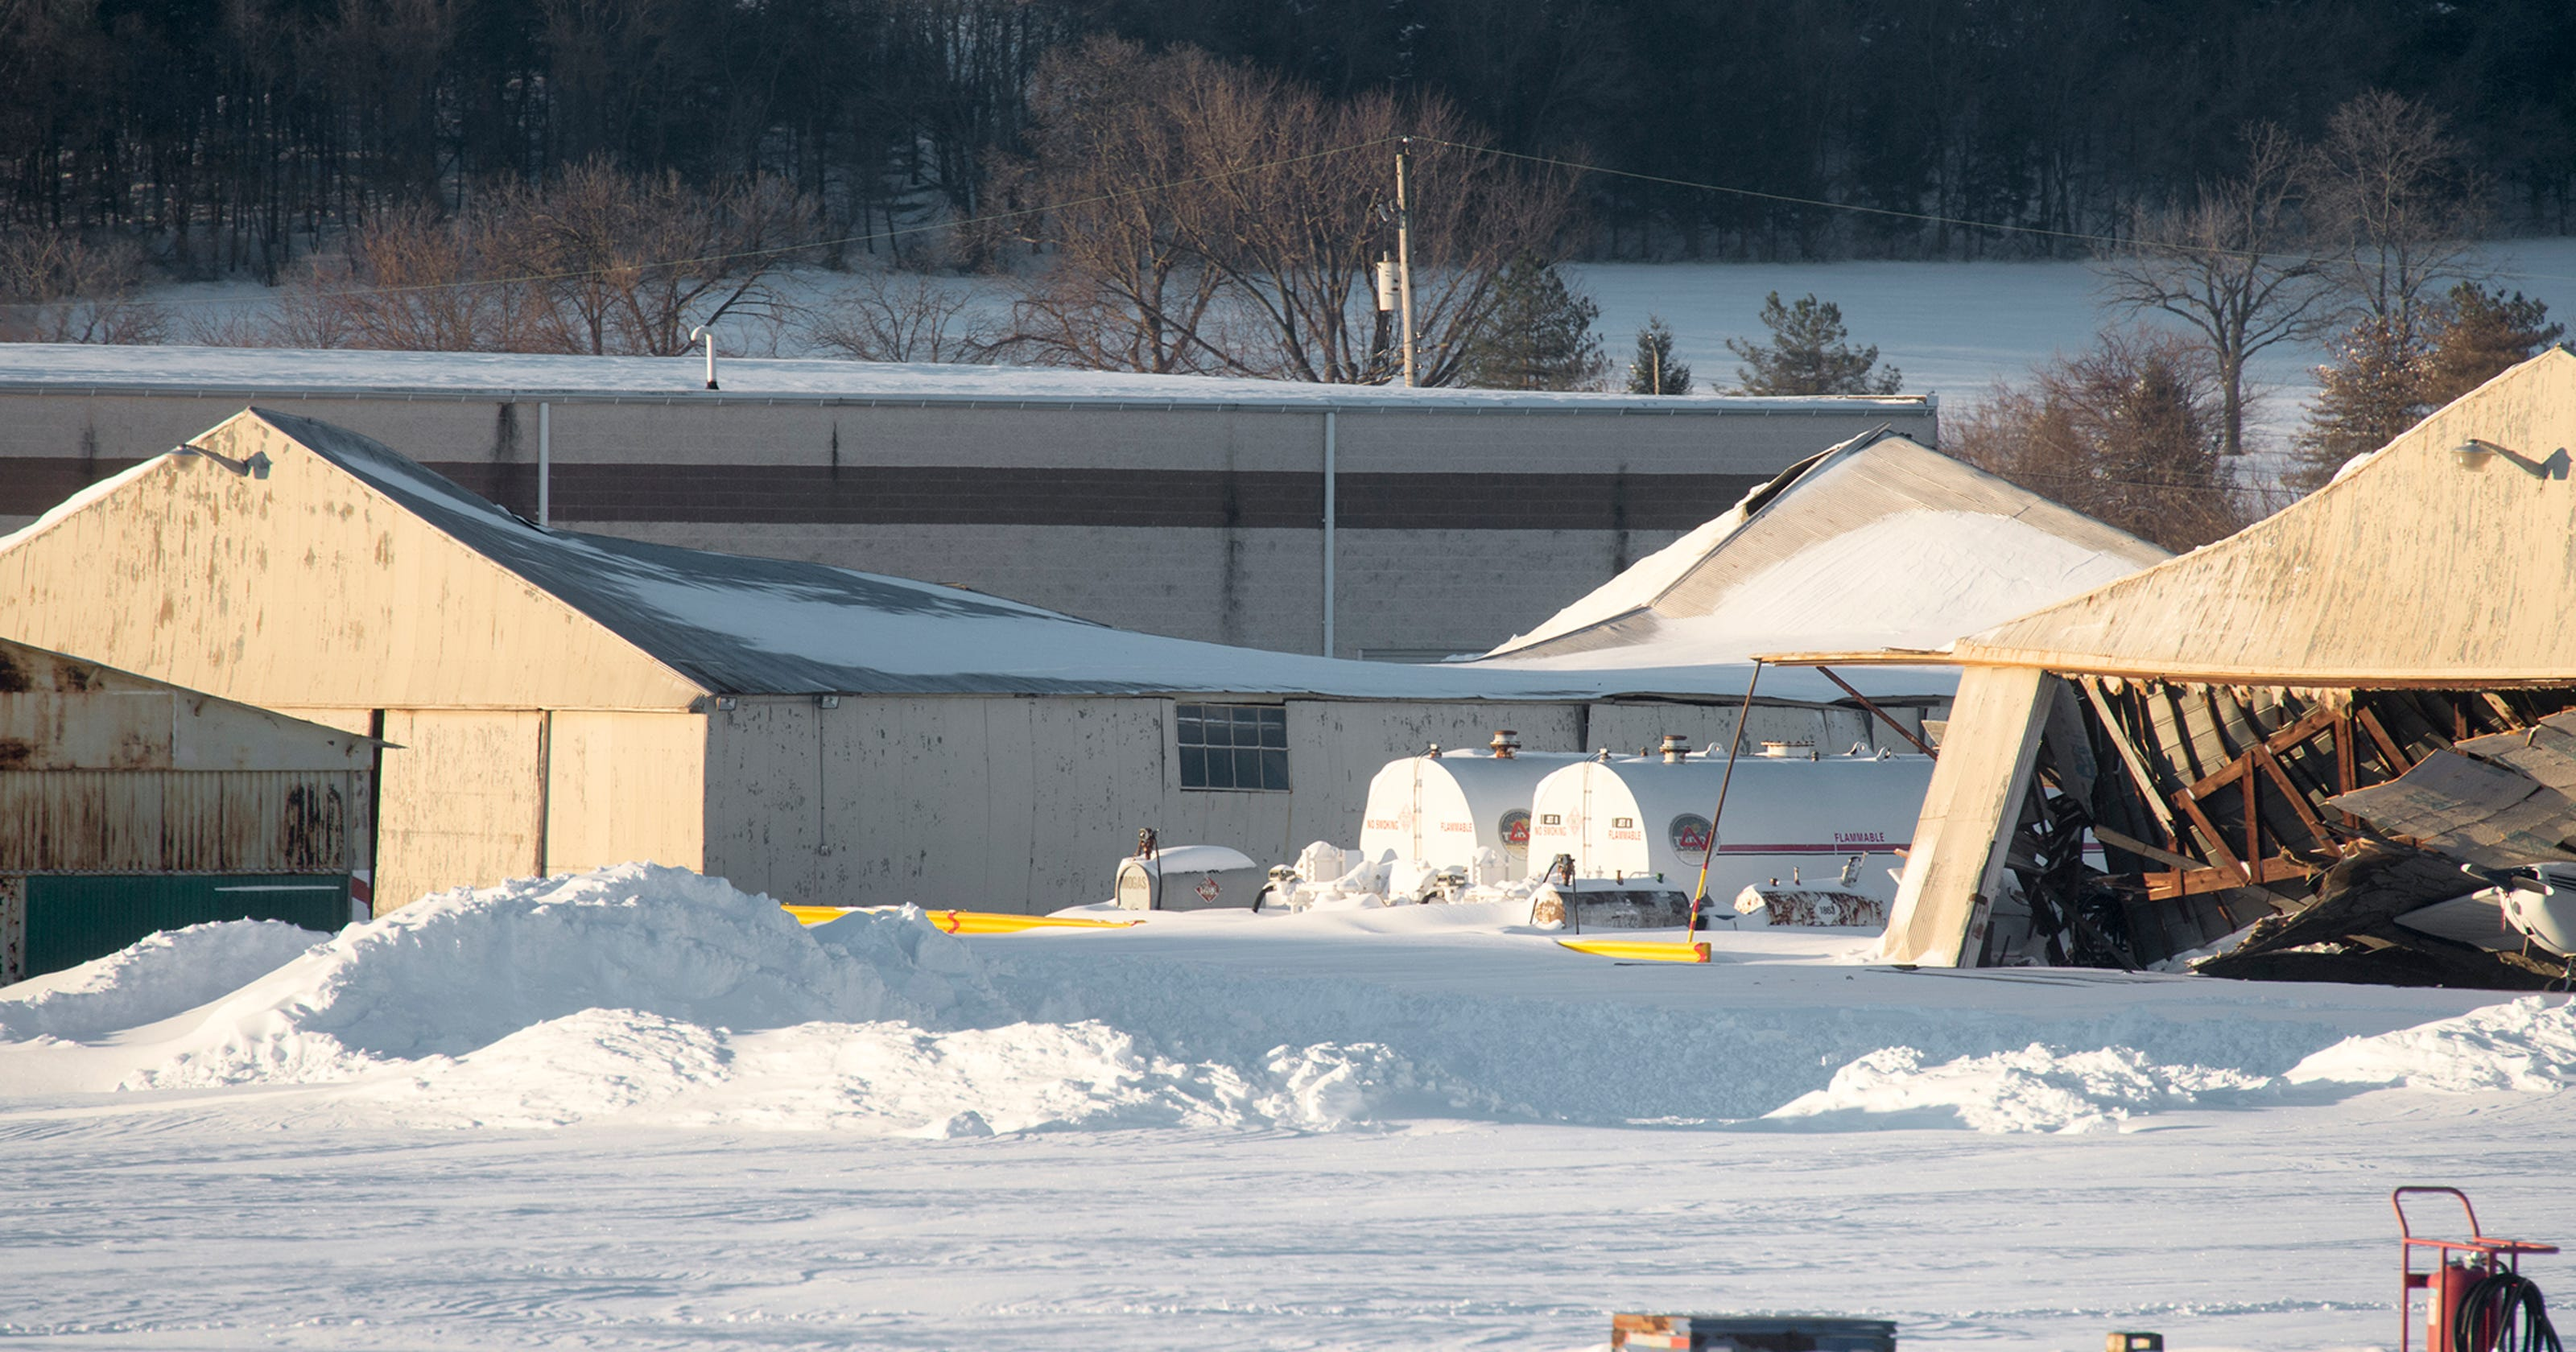 Roofs Collapse From Weight Of Snow In York County